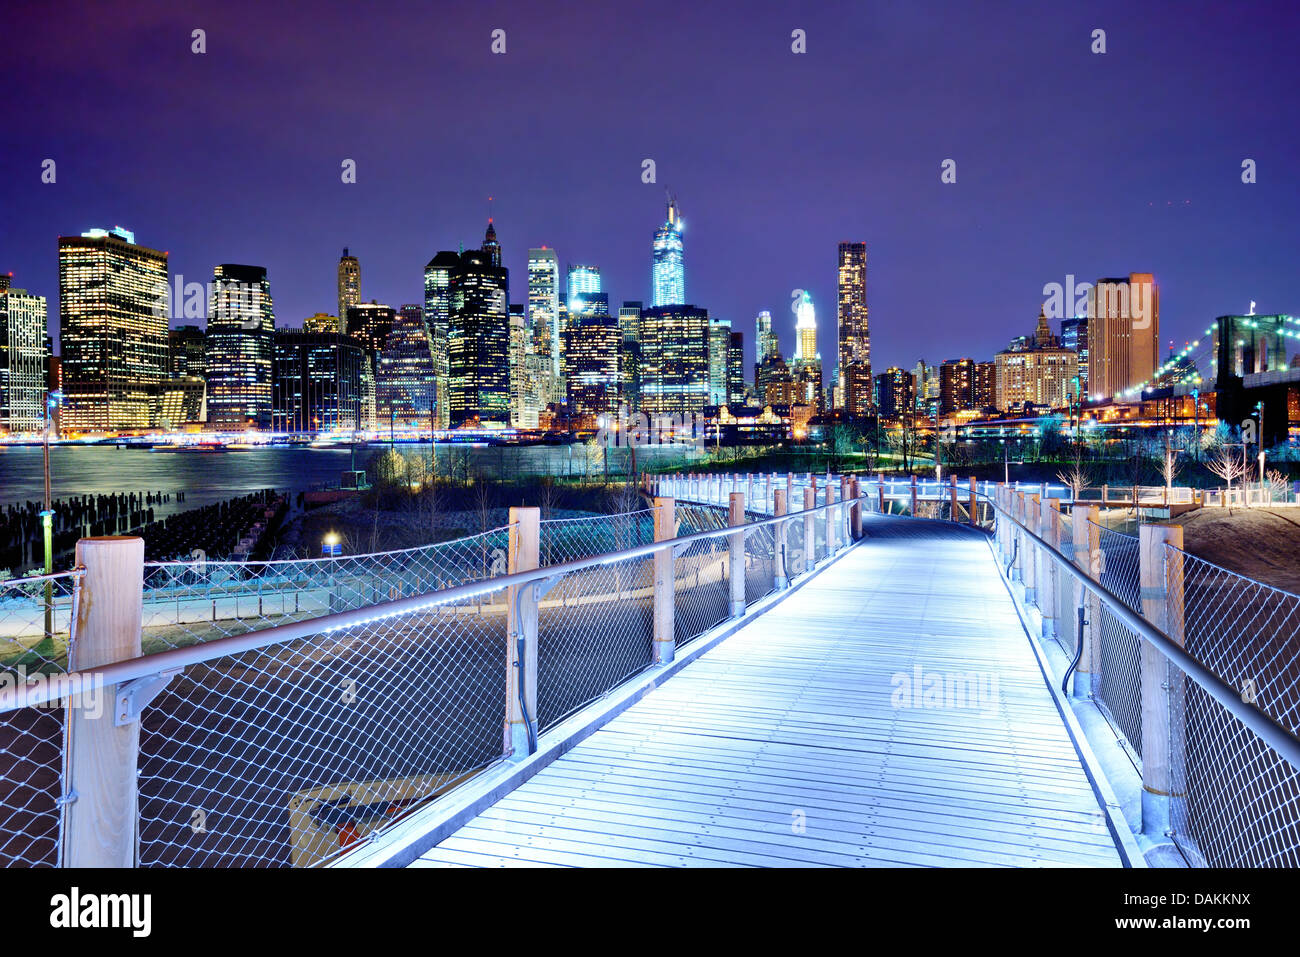 Lower Manhattan skyline viewed from Brooklyn in New York City. - Stock Image